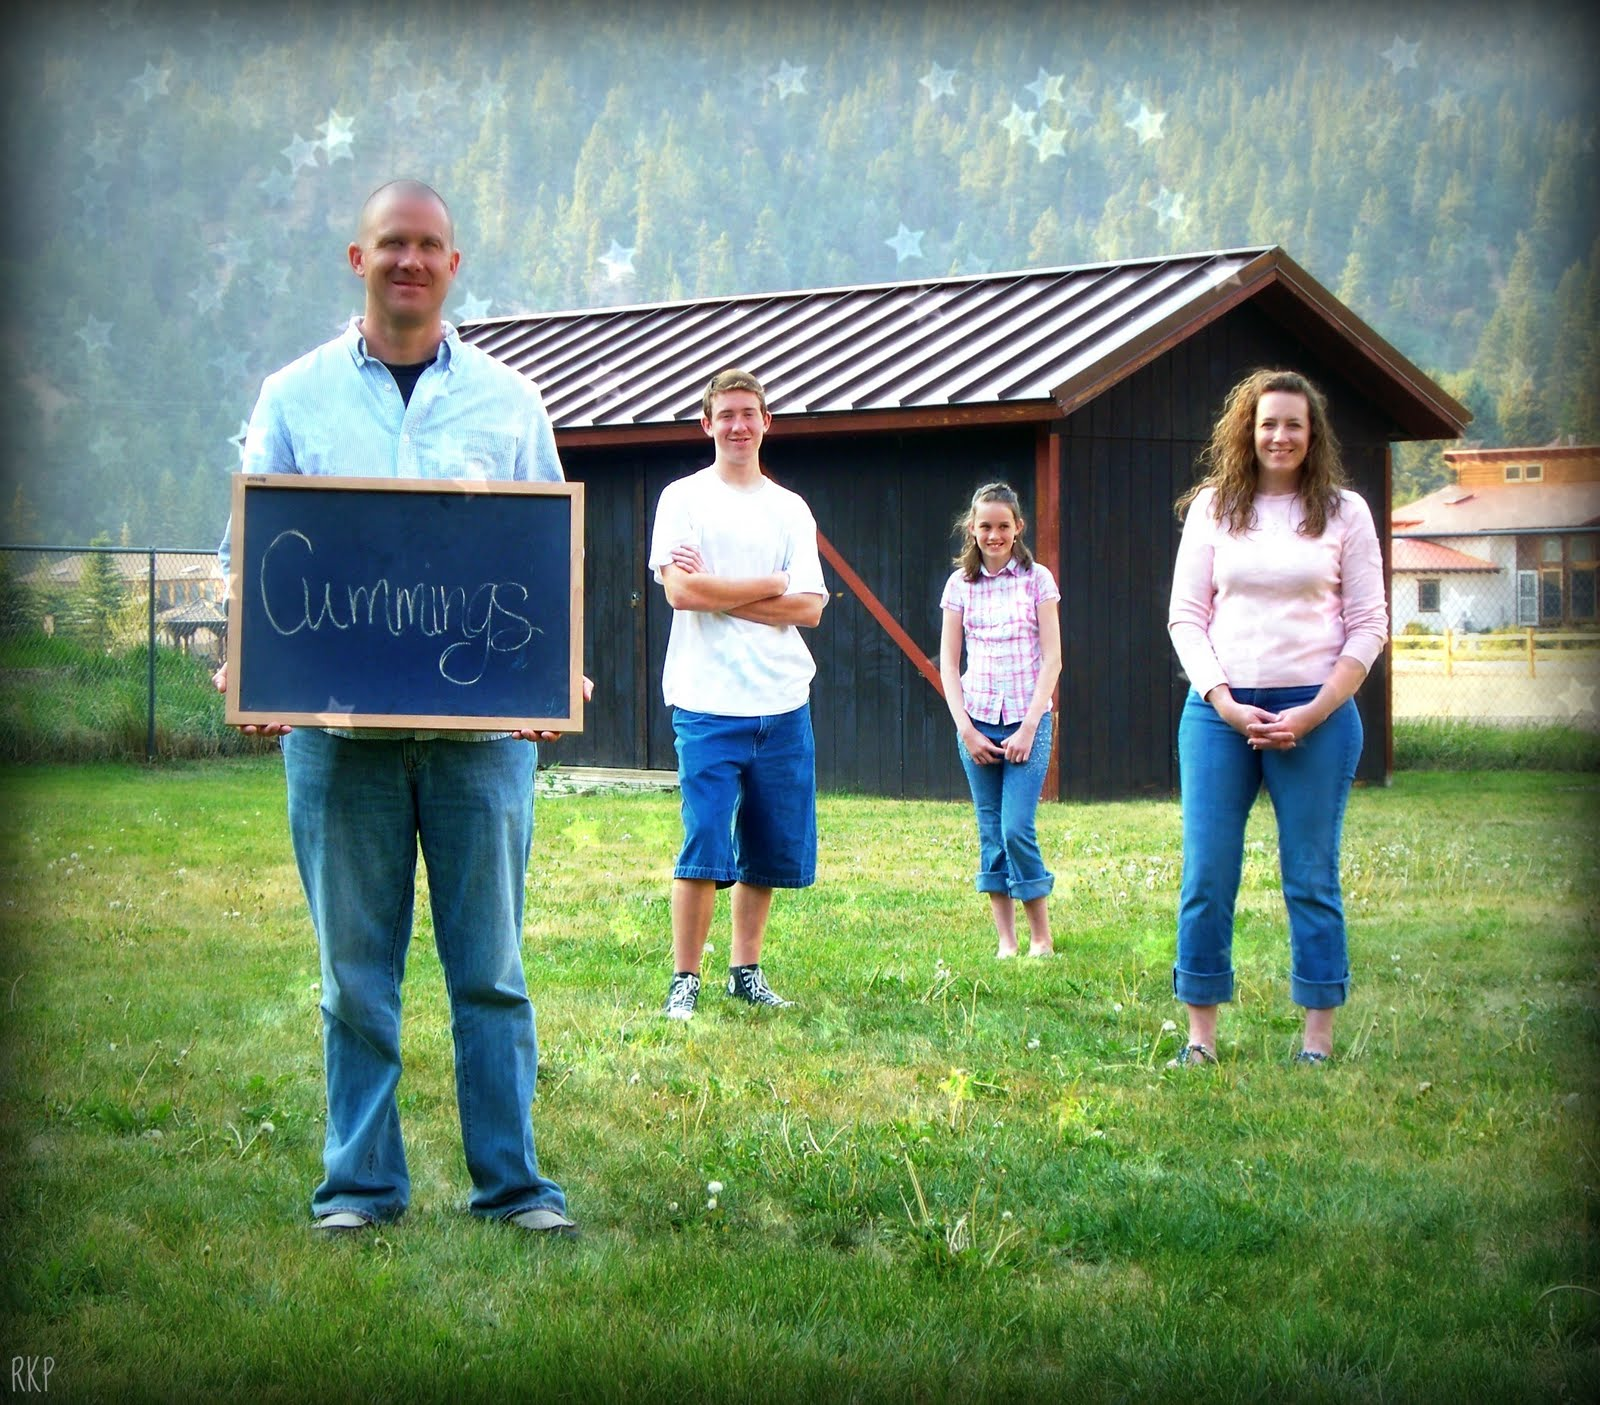 Family portrait ideas outdoors male models picture for Family photo ideas